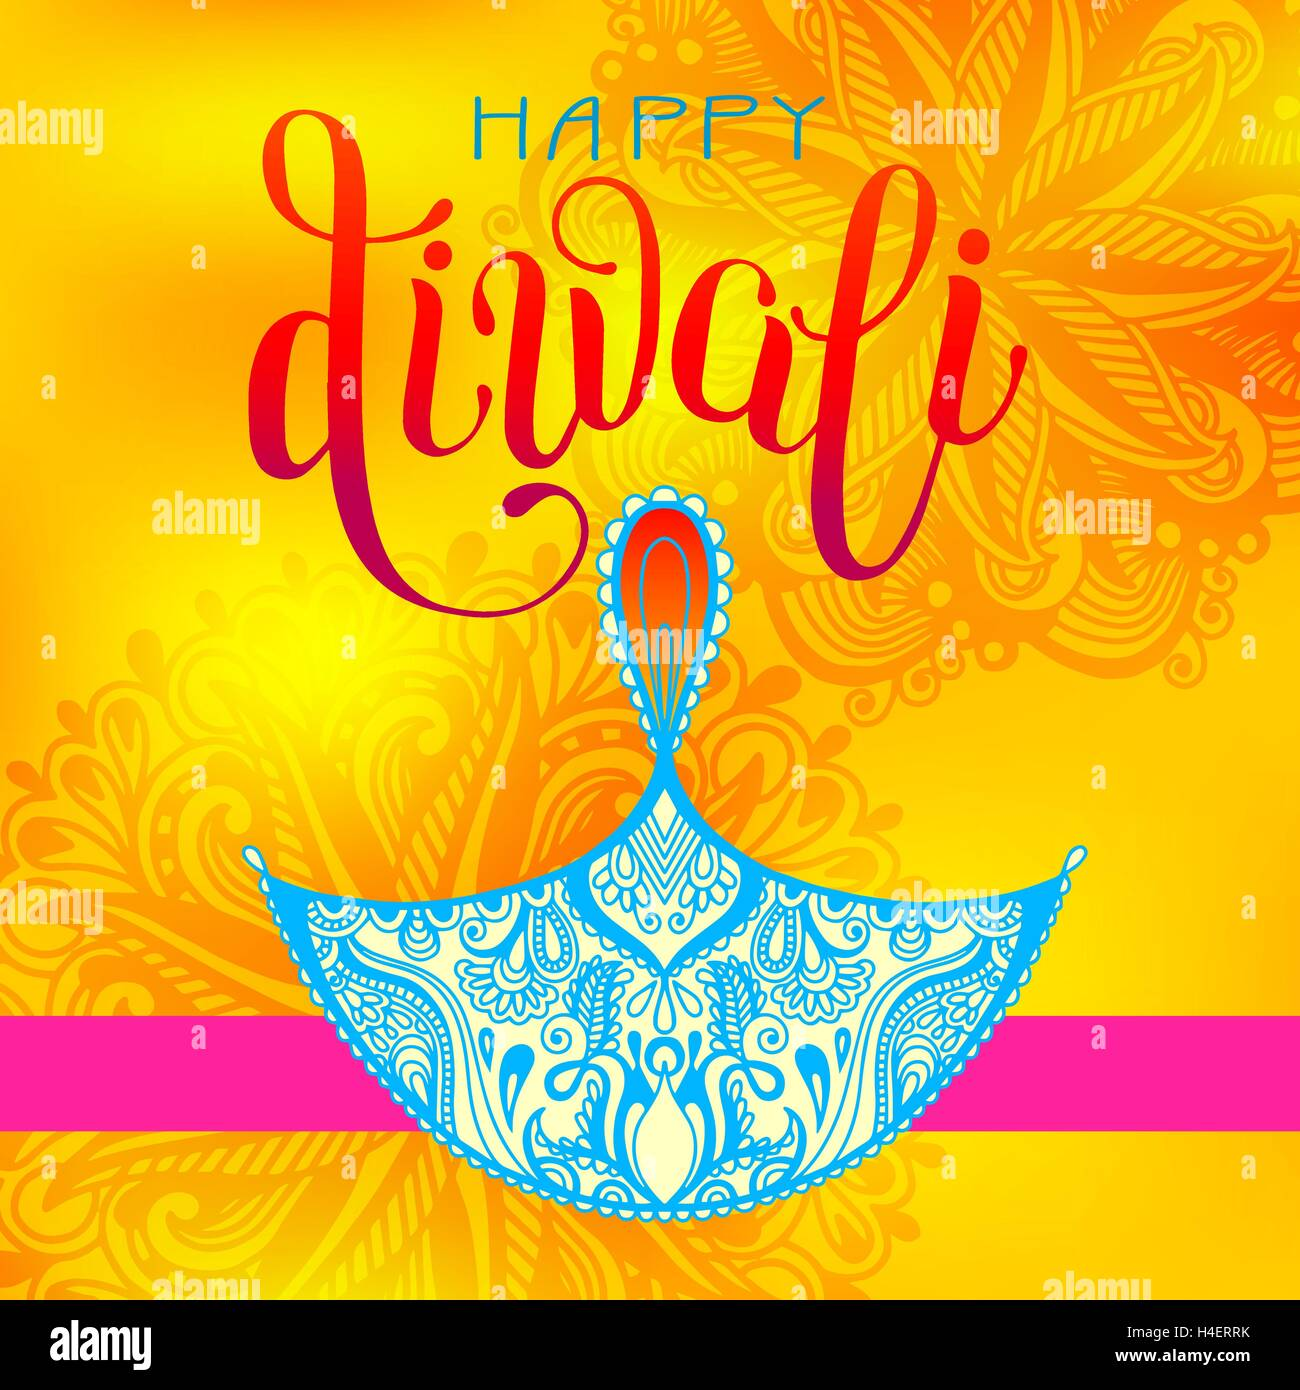 Happy diwali greeting card with hand written inscription to indi happy diwali greeting card with hand written inscription to indi m4hsunfo